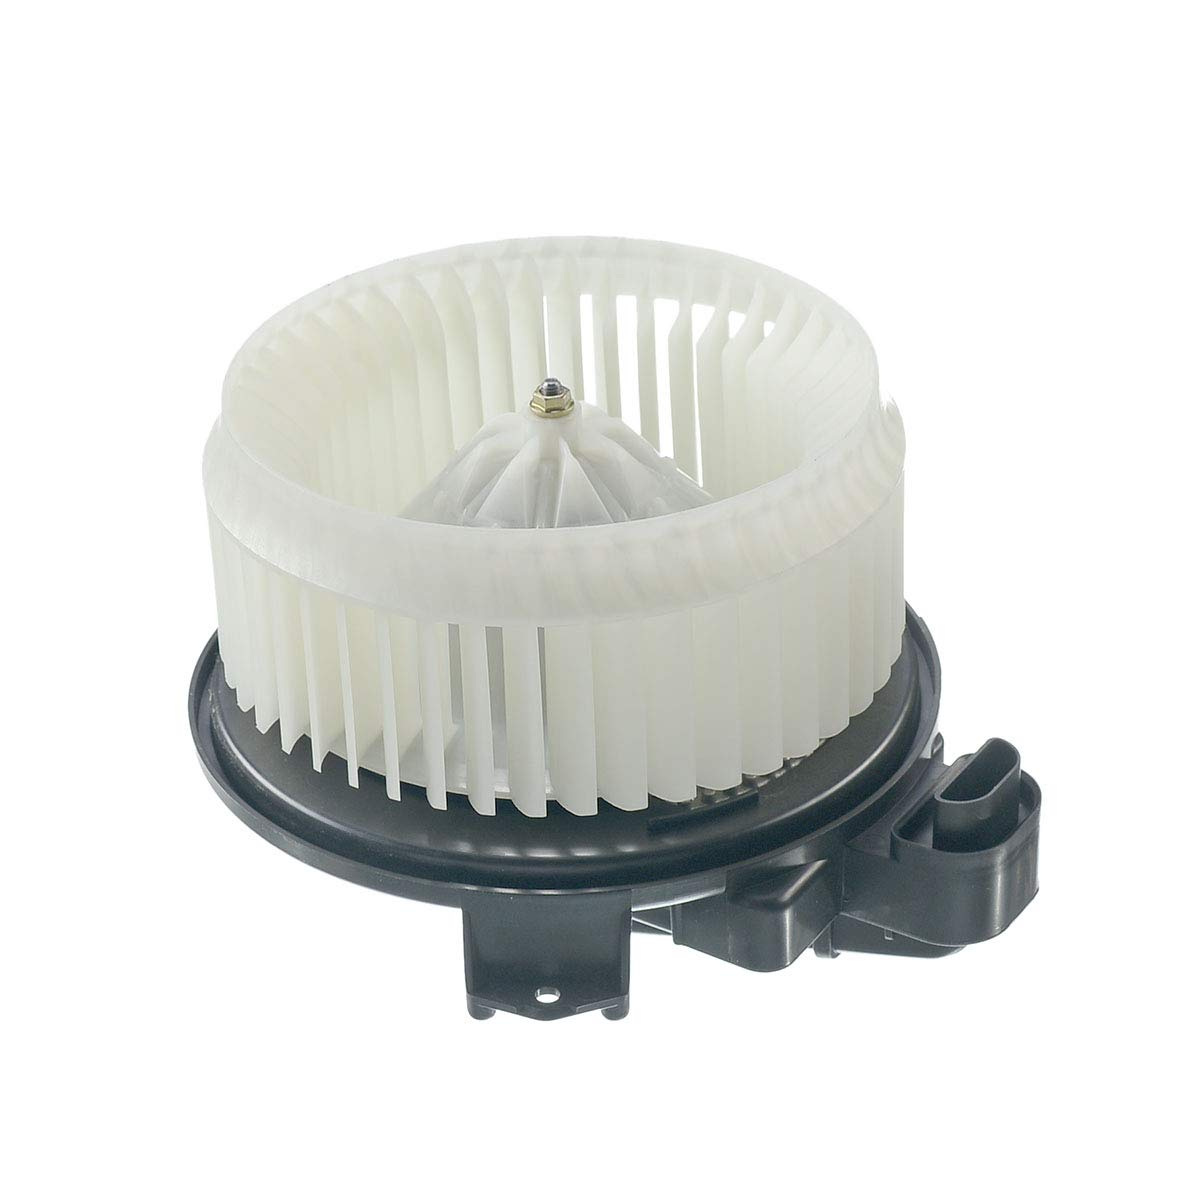 A-Premium Heater Blower Motor with Fan Cage for Lexus ES350 GS350 GS450h GX460 IS250 IS350 Toyota 4Runner Camry Highlander Tundra